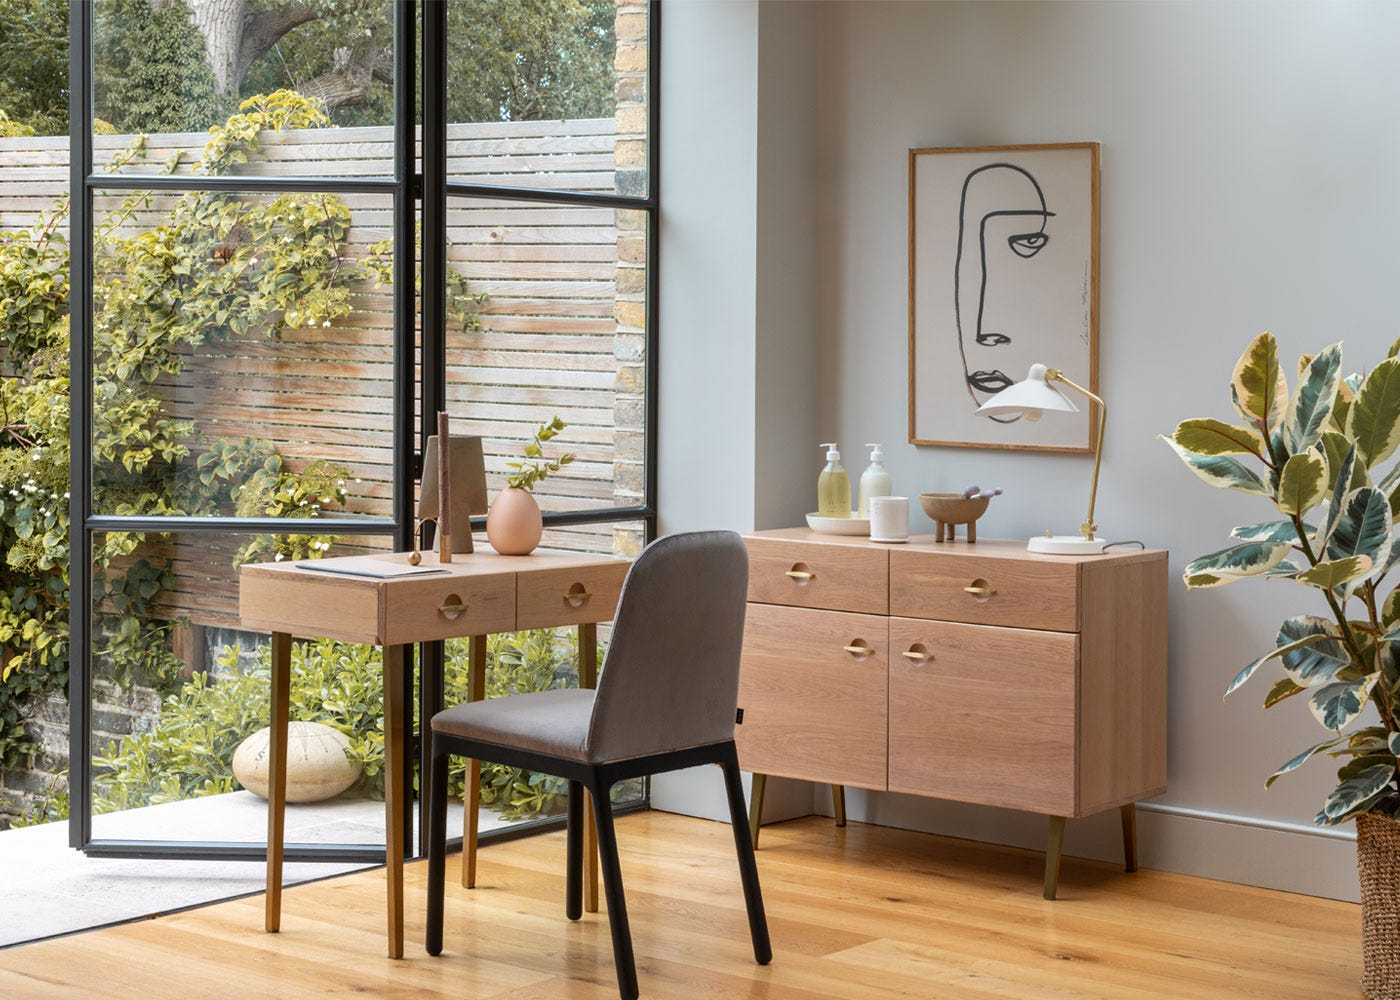 Milton cream table lamp, Ellie velvet dining chair in taupe, Crawford small sideboard, .